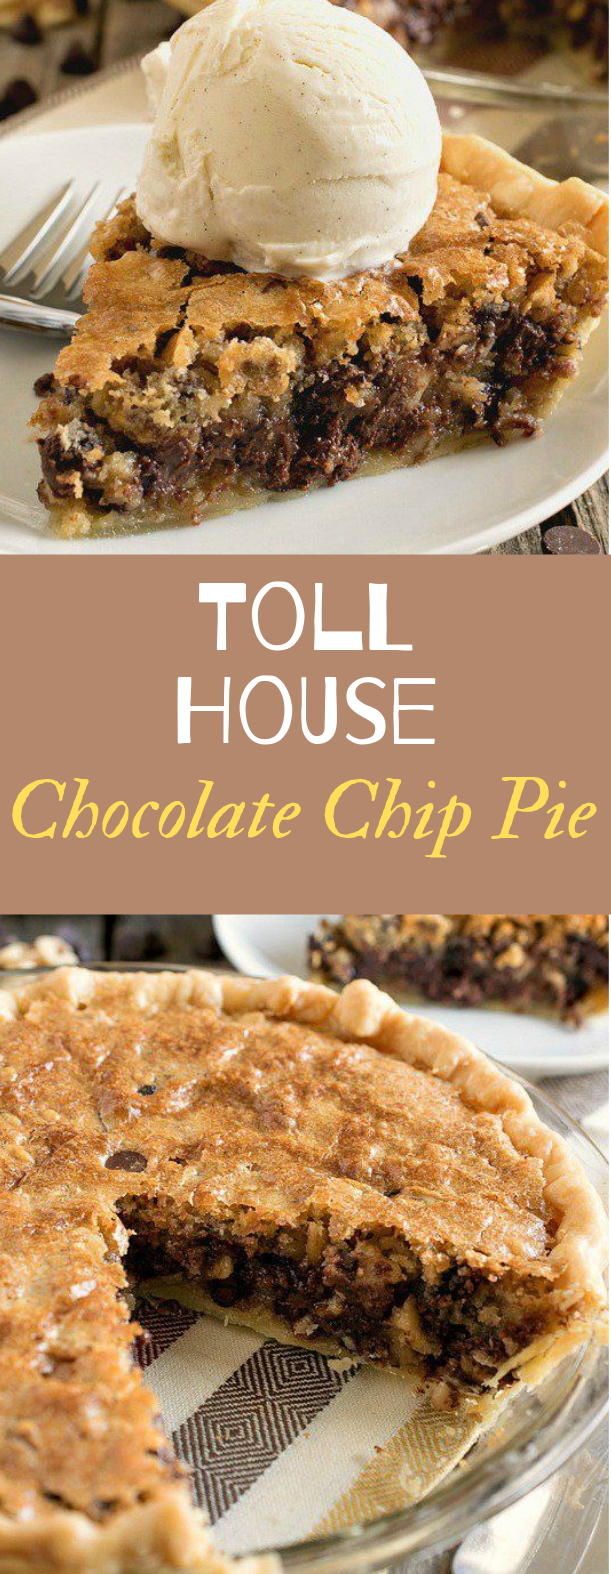 Toll House Chocolate Chip Pie #dessert #chocolate